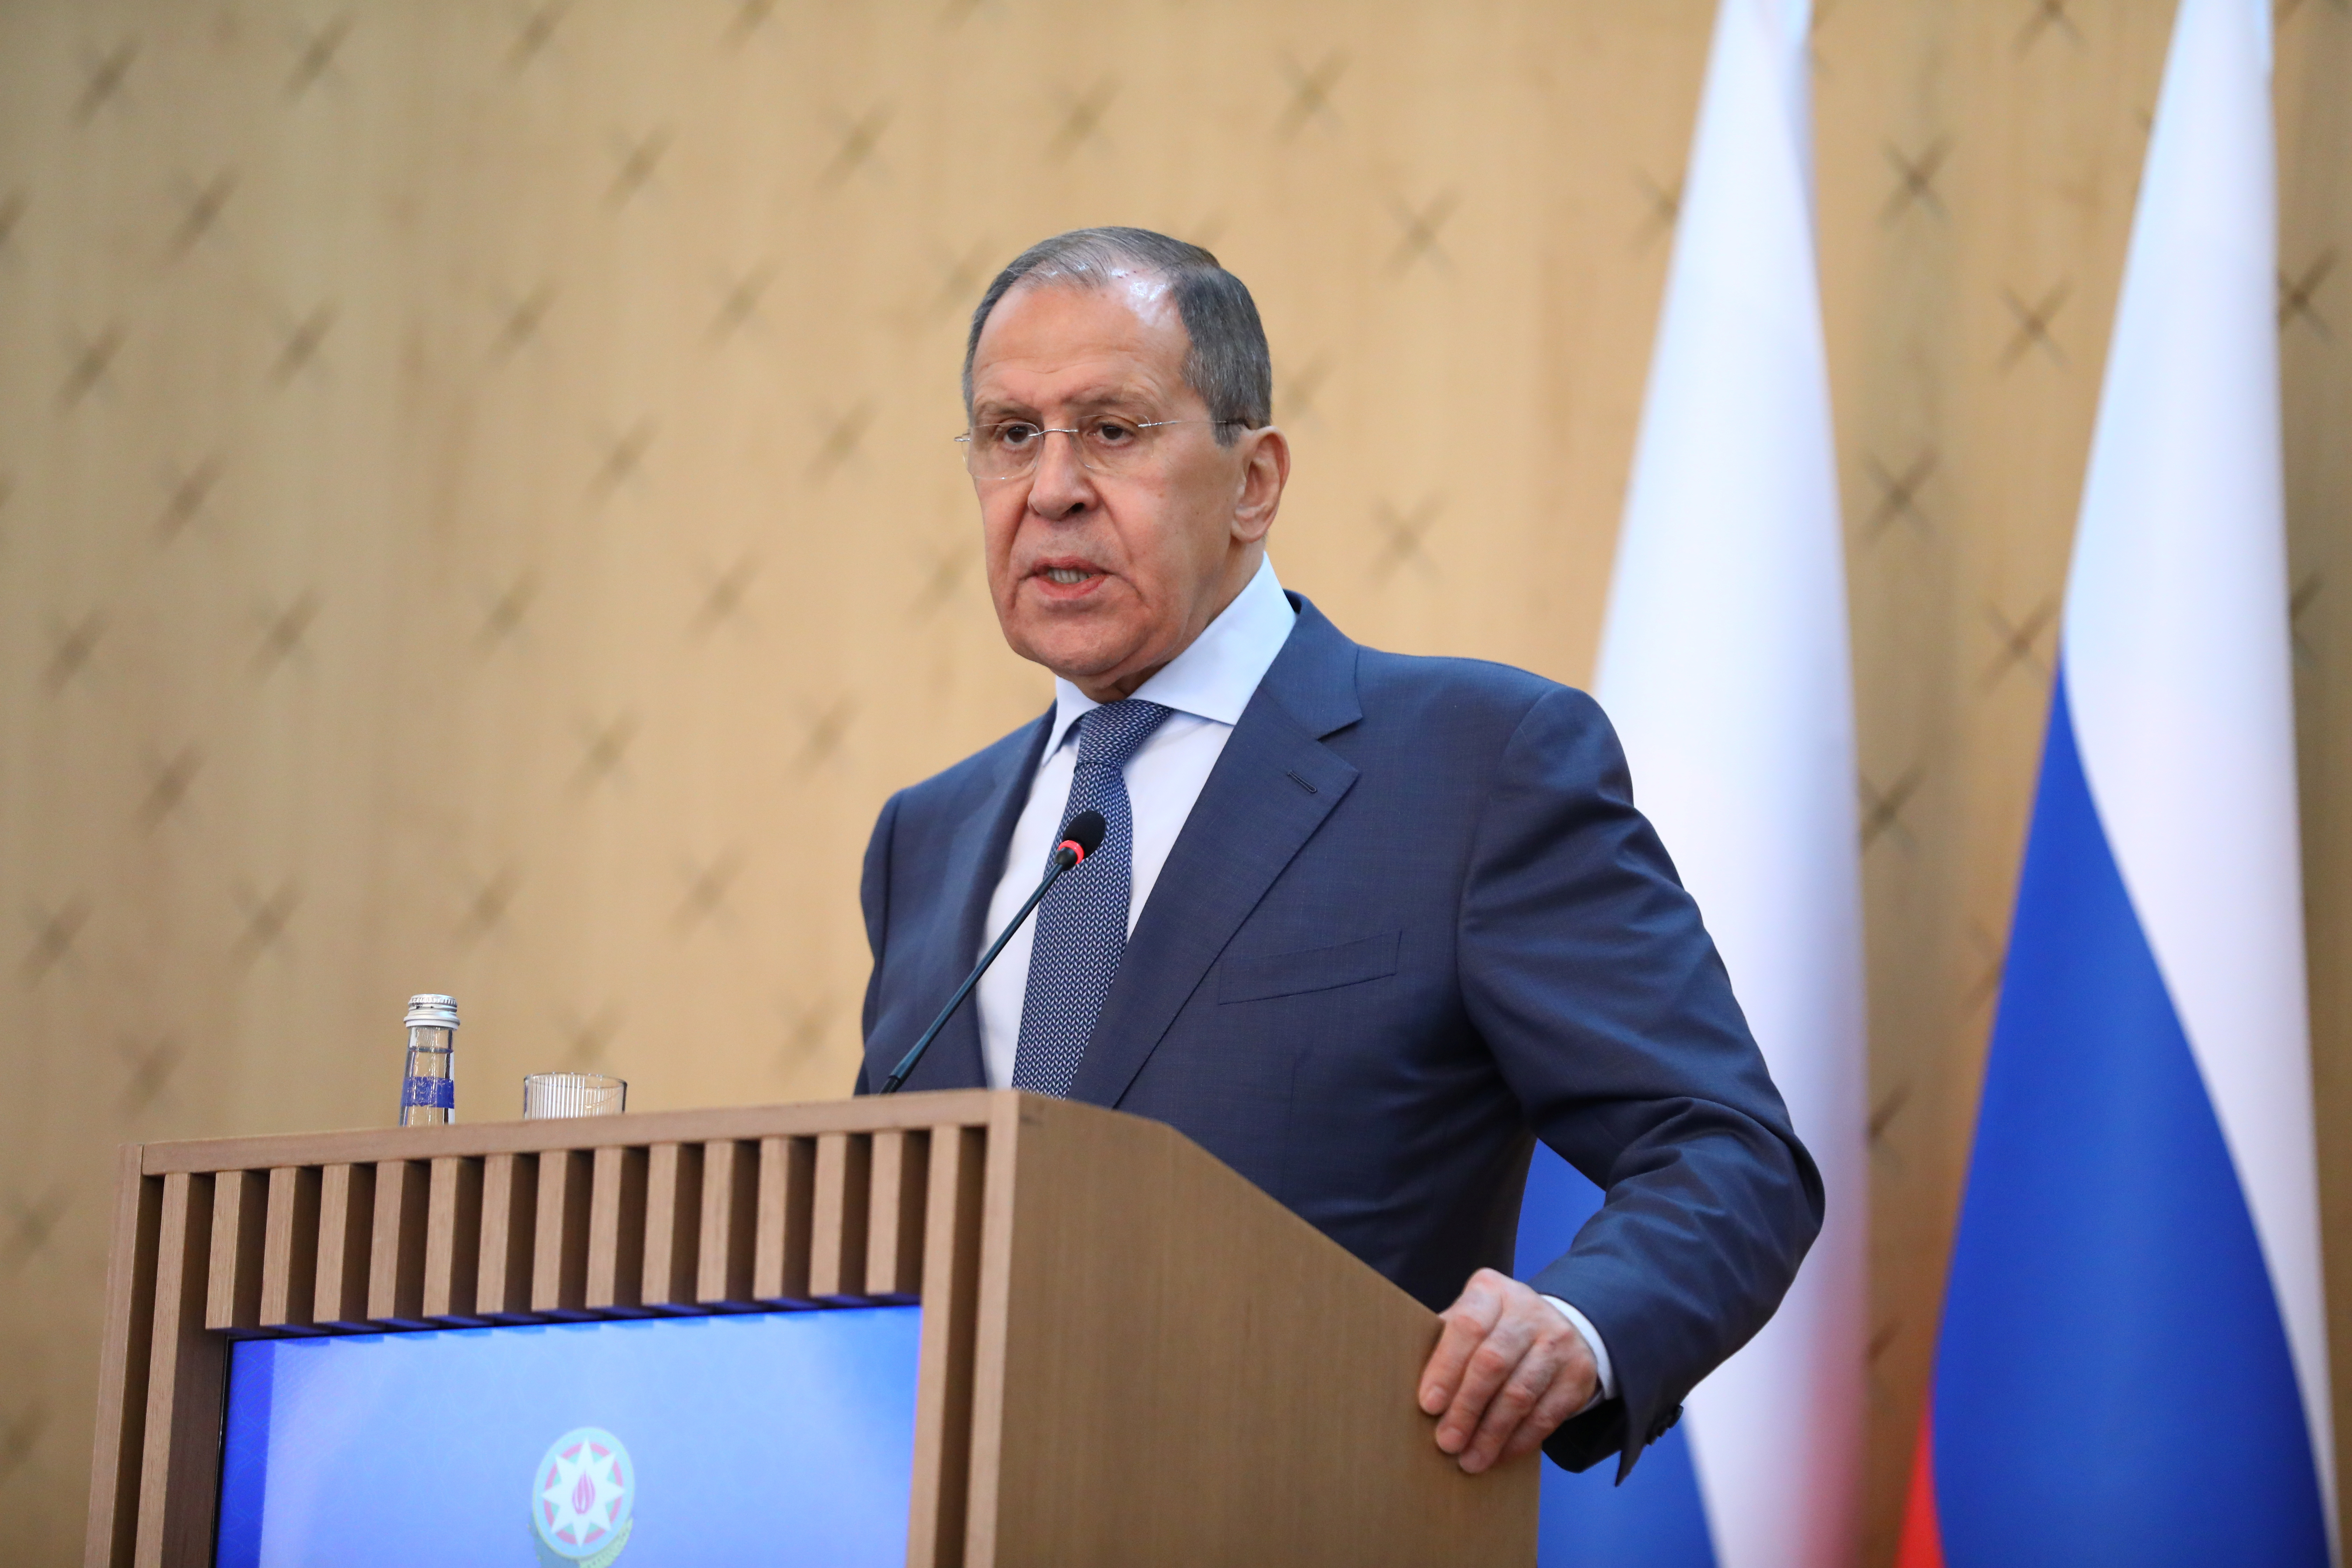 Russia's Foreign Minister Sergei Lavrov speaks during a joint news conference with Azerbaijan's Foreign Minister Jeyhun Bayramov following their meeting in Baku, Azerbaijan May 11, 2021. Russian Foreign Ministry/Handout via REUTERS